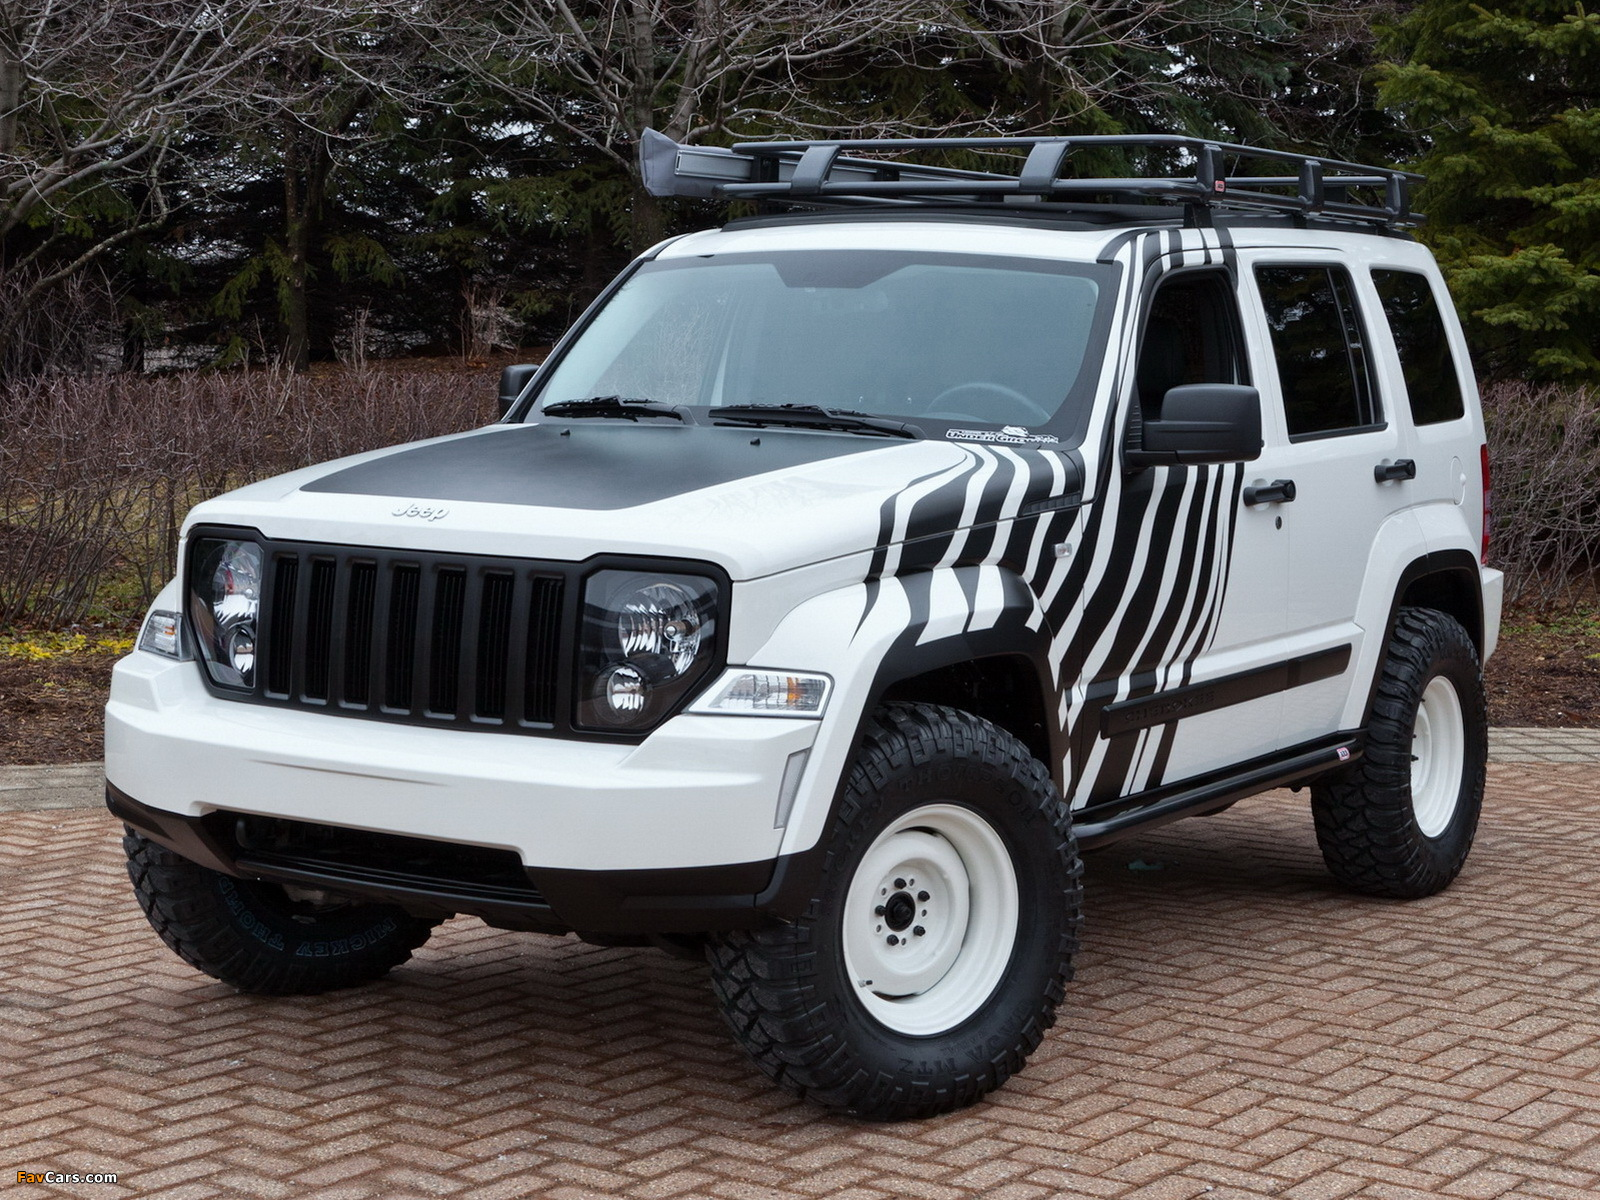 Photos Of Mopar Jeep Cherokee Overland Concept Kk 2011